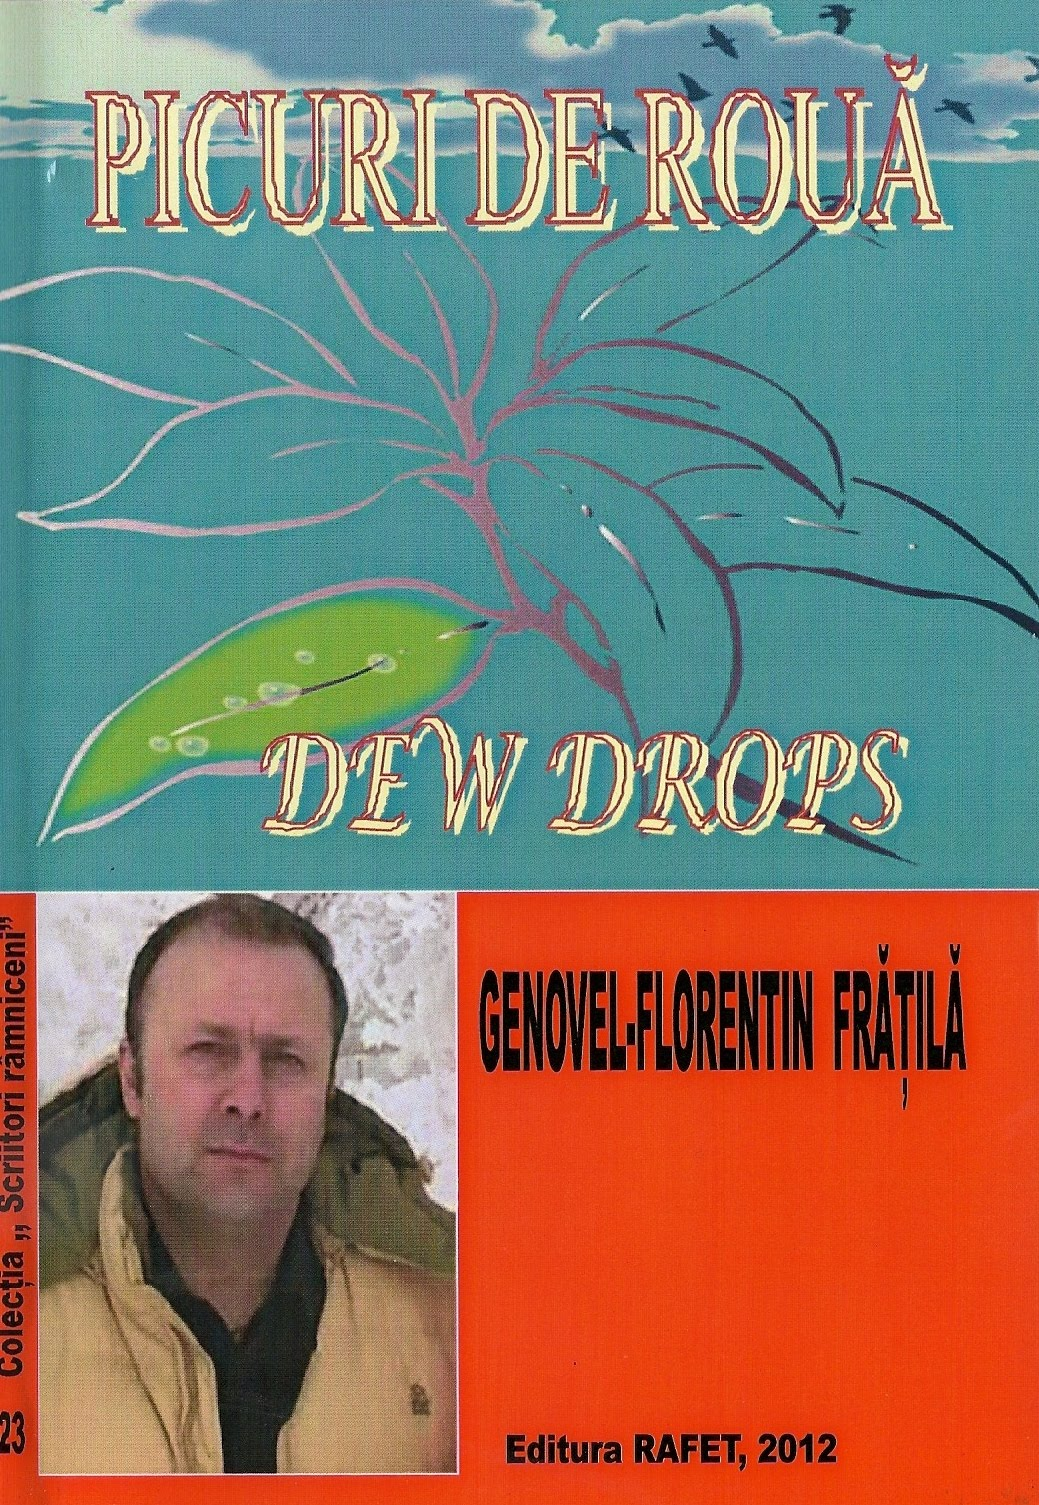 Genovel Florentin Frăţilă - Dew Drops